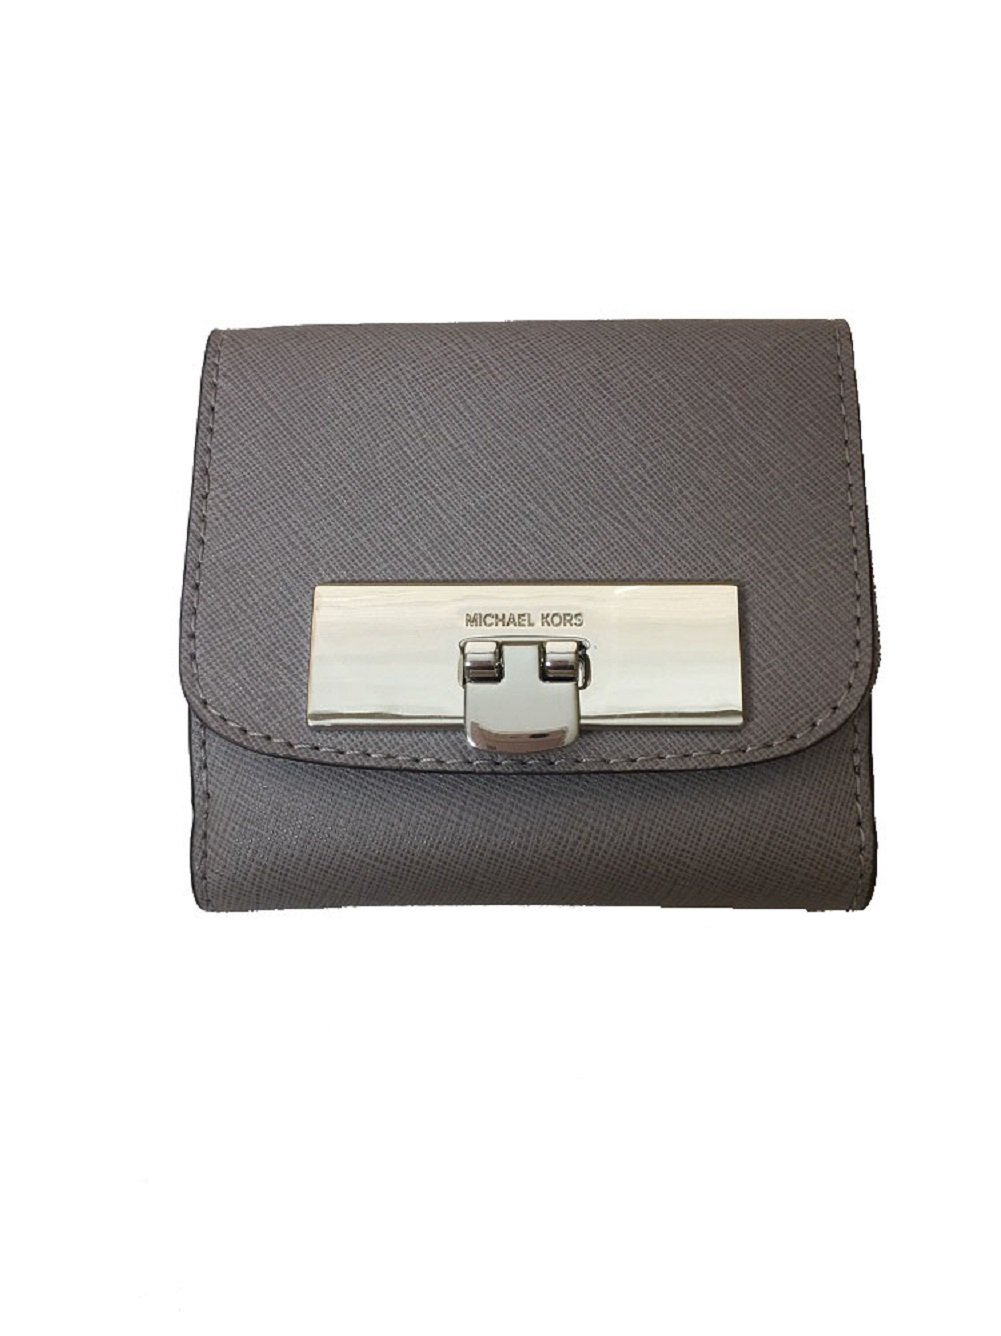 Michael Kors Women's Callie Trifold Coin Case Wallet Pearl Grey